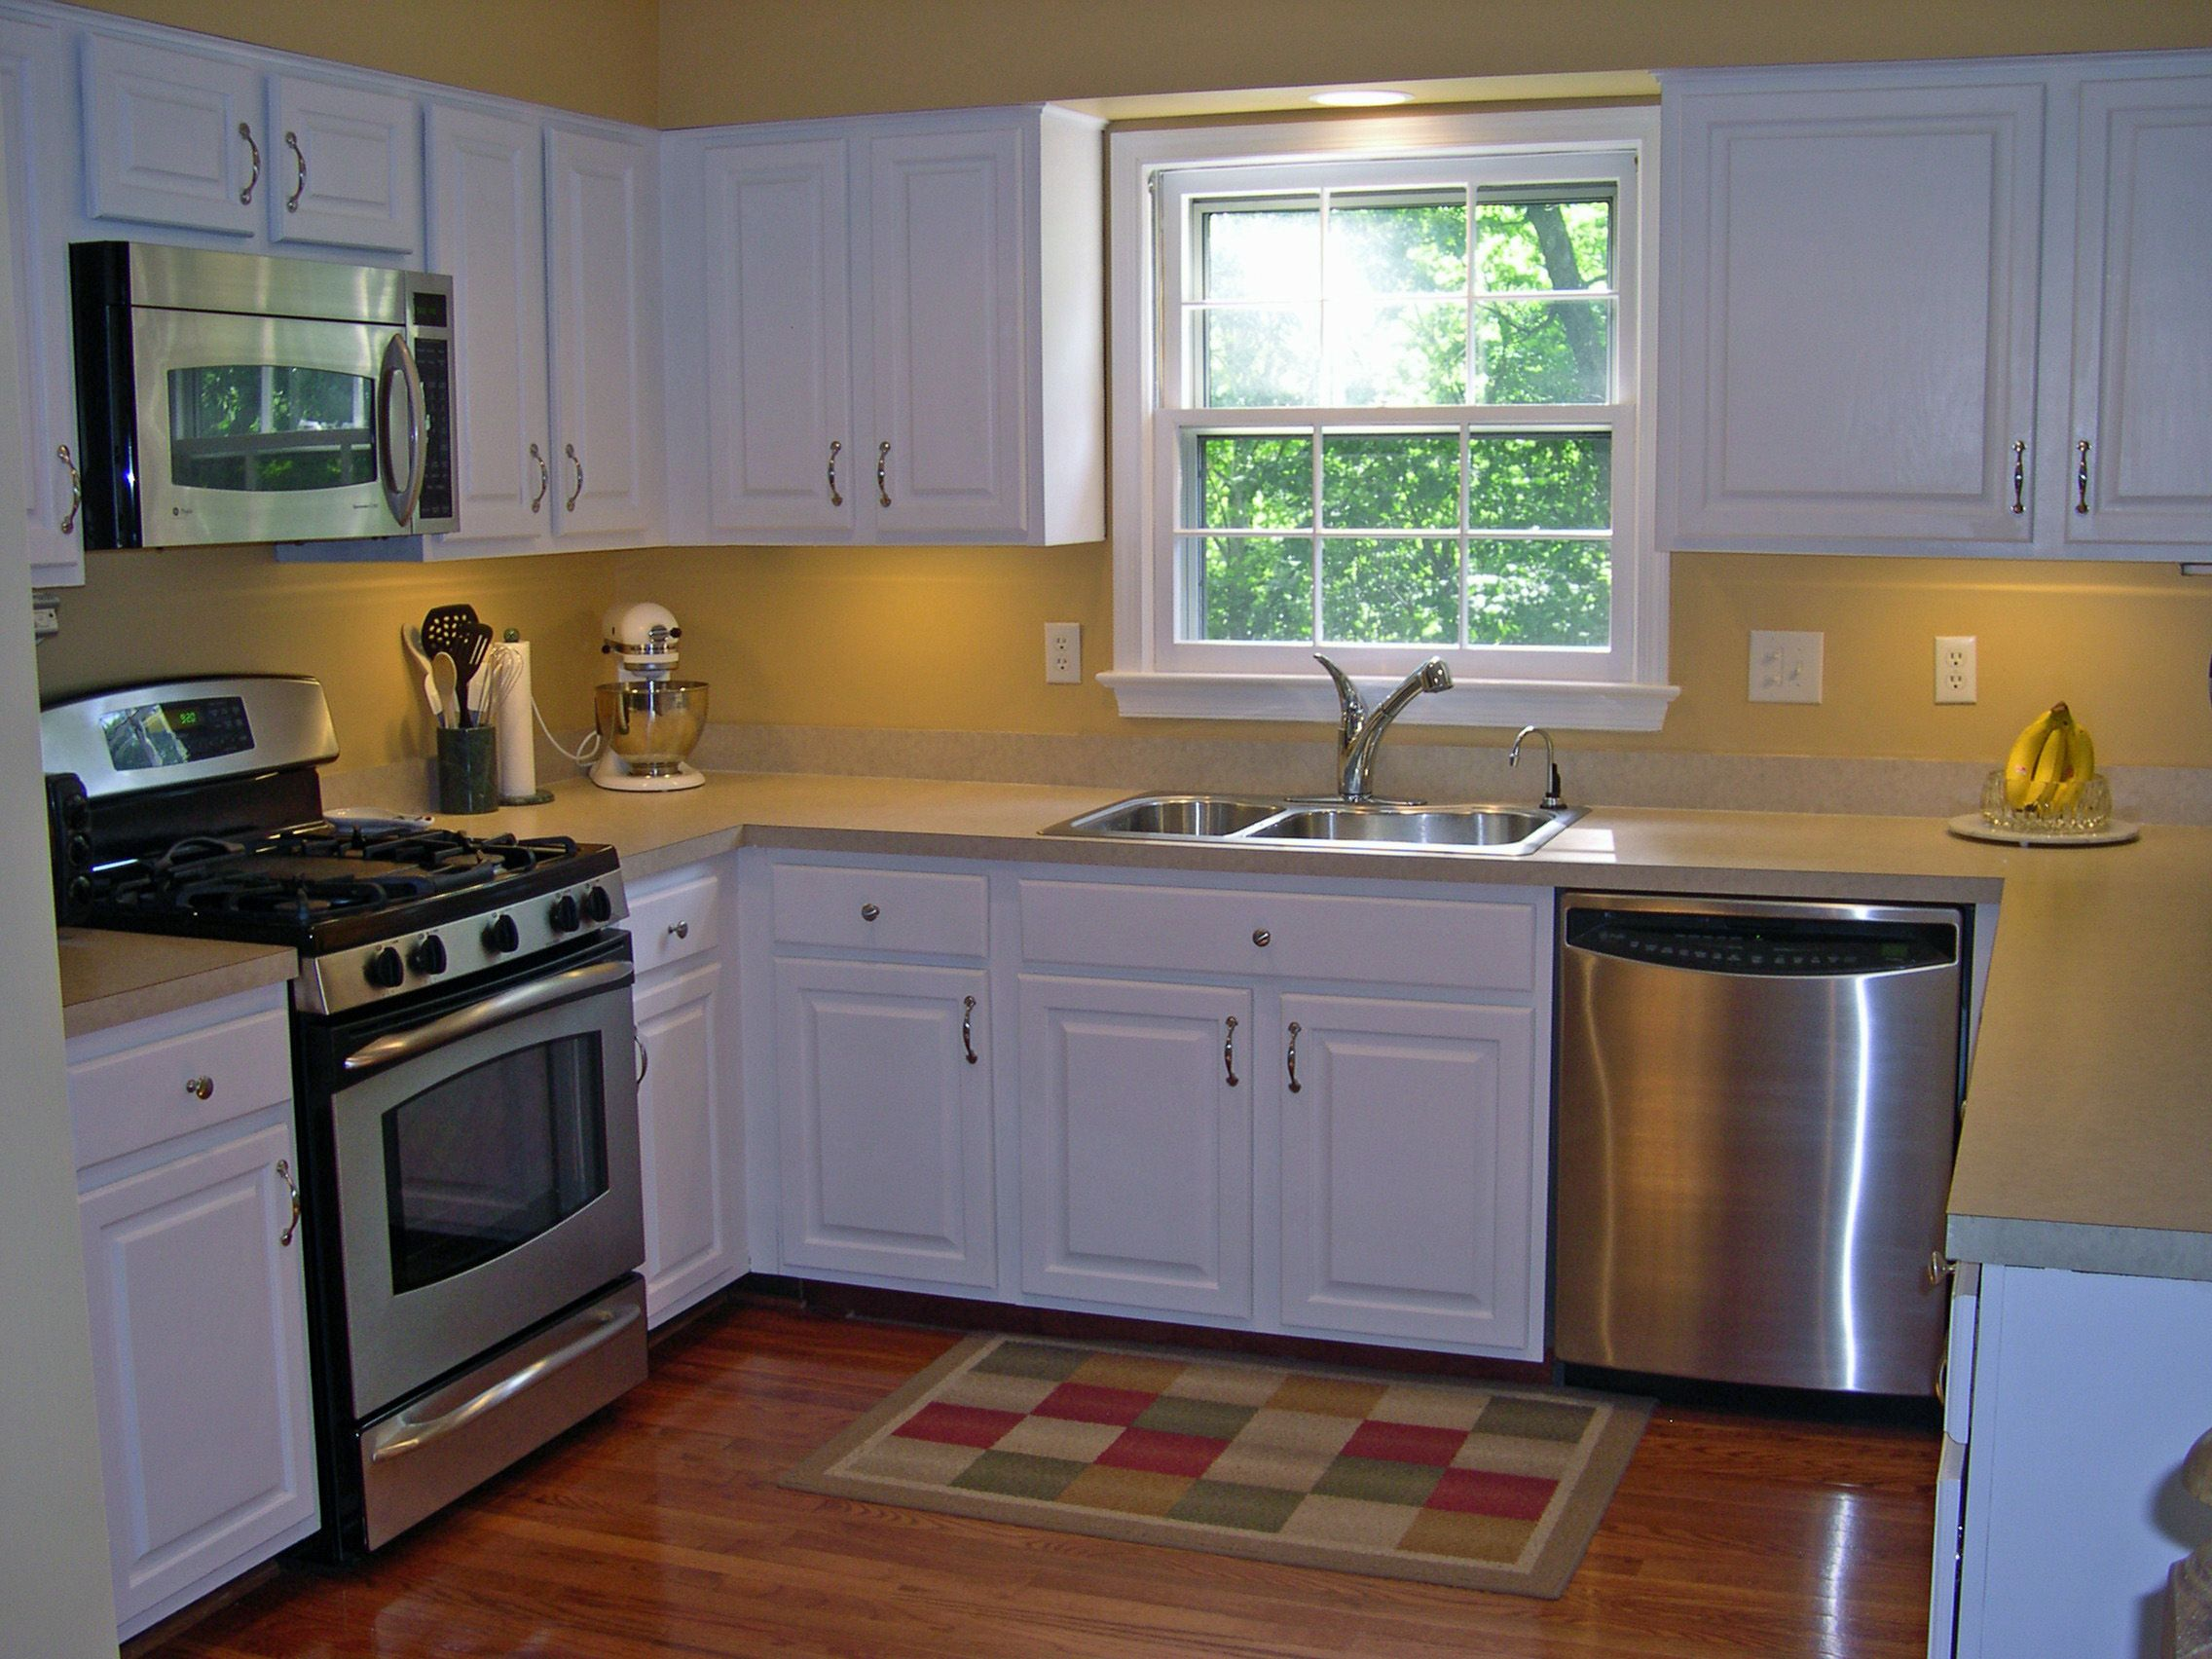 Small Kitchen Remodel Design small kitchen remodeling ideas | small kitchen remodel ideas